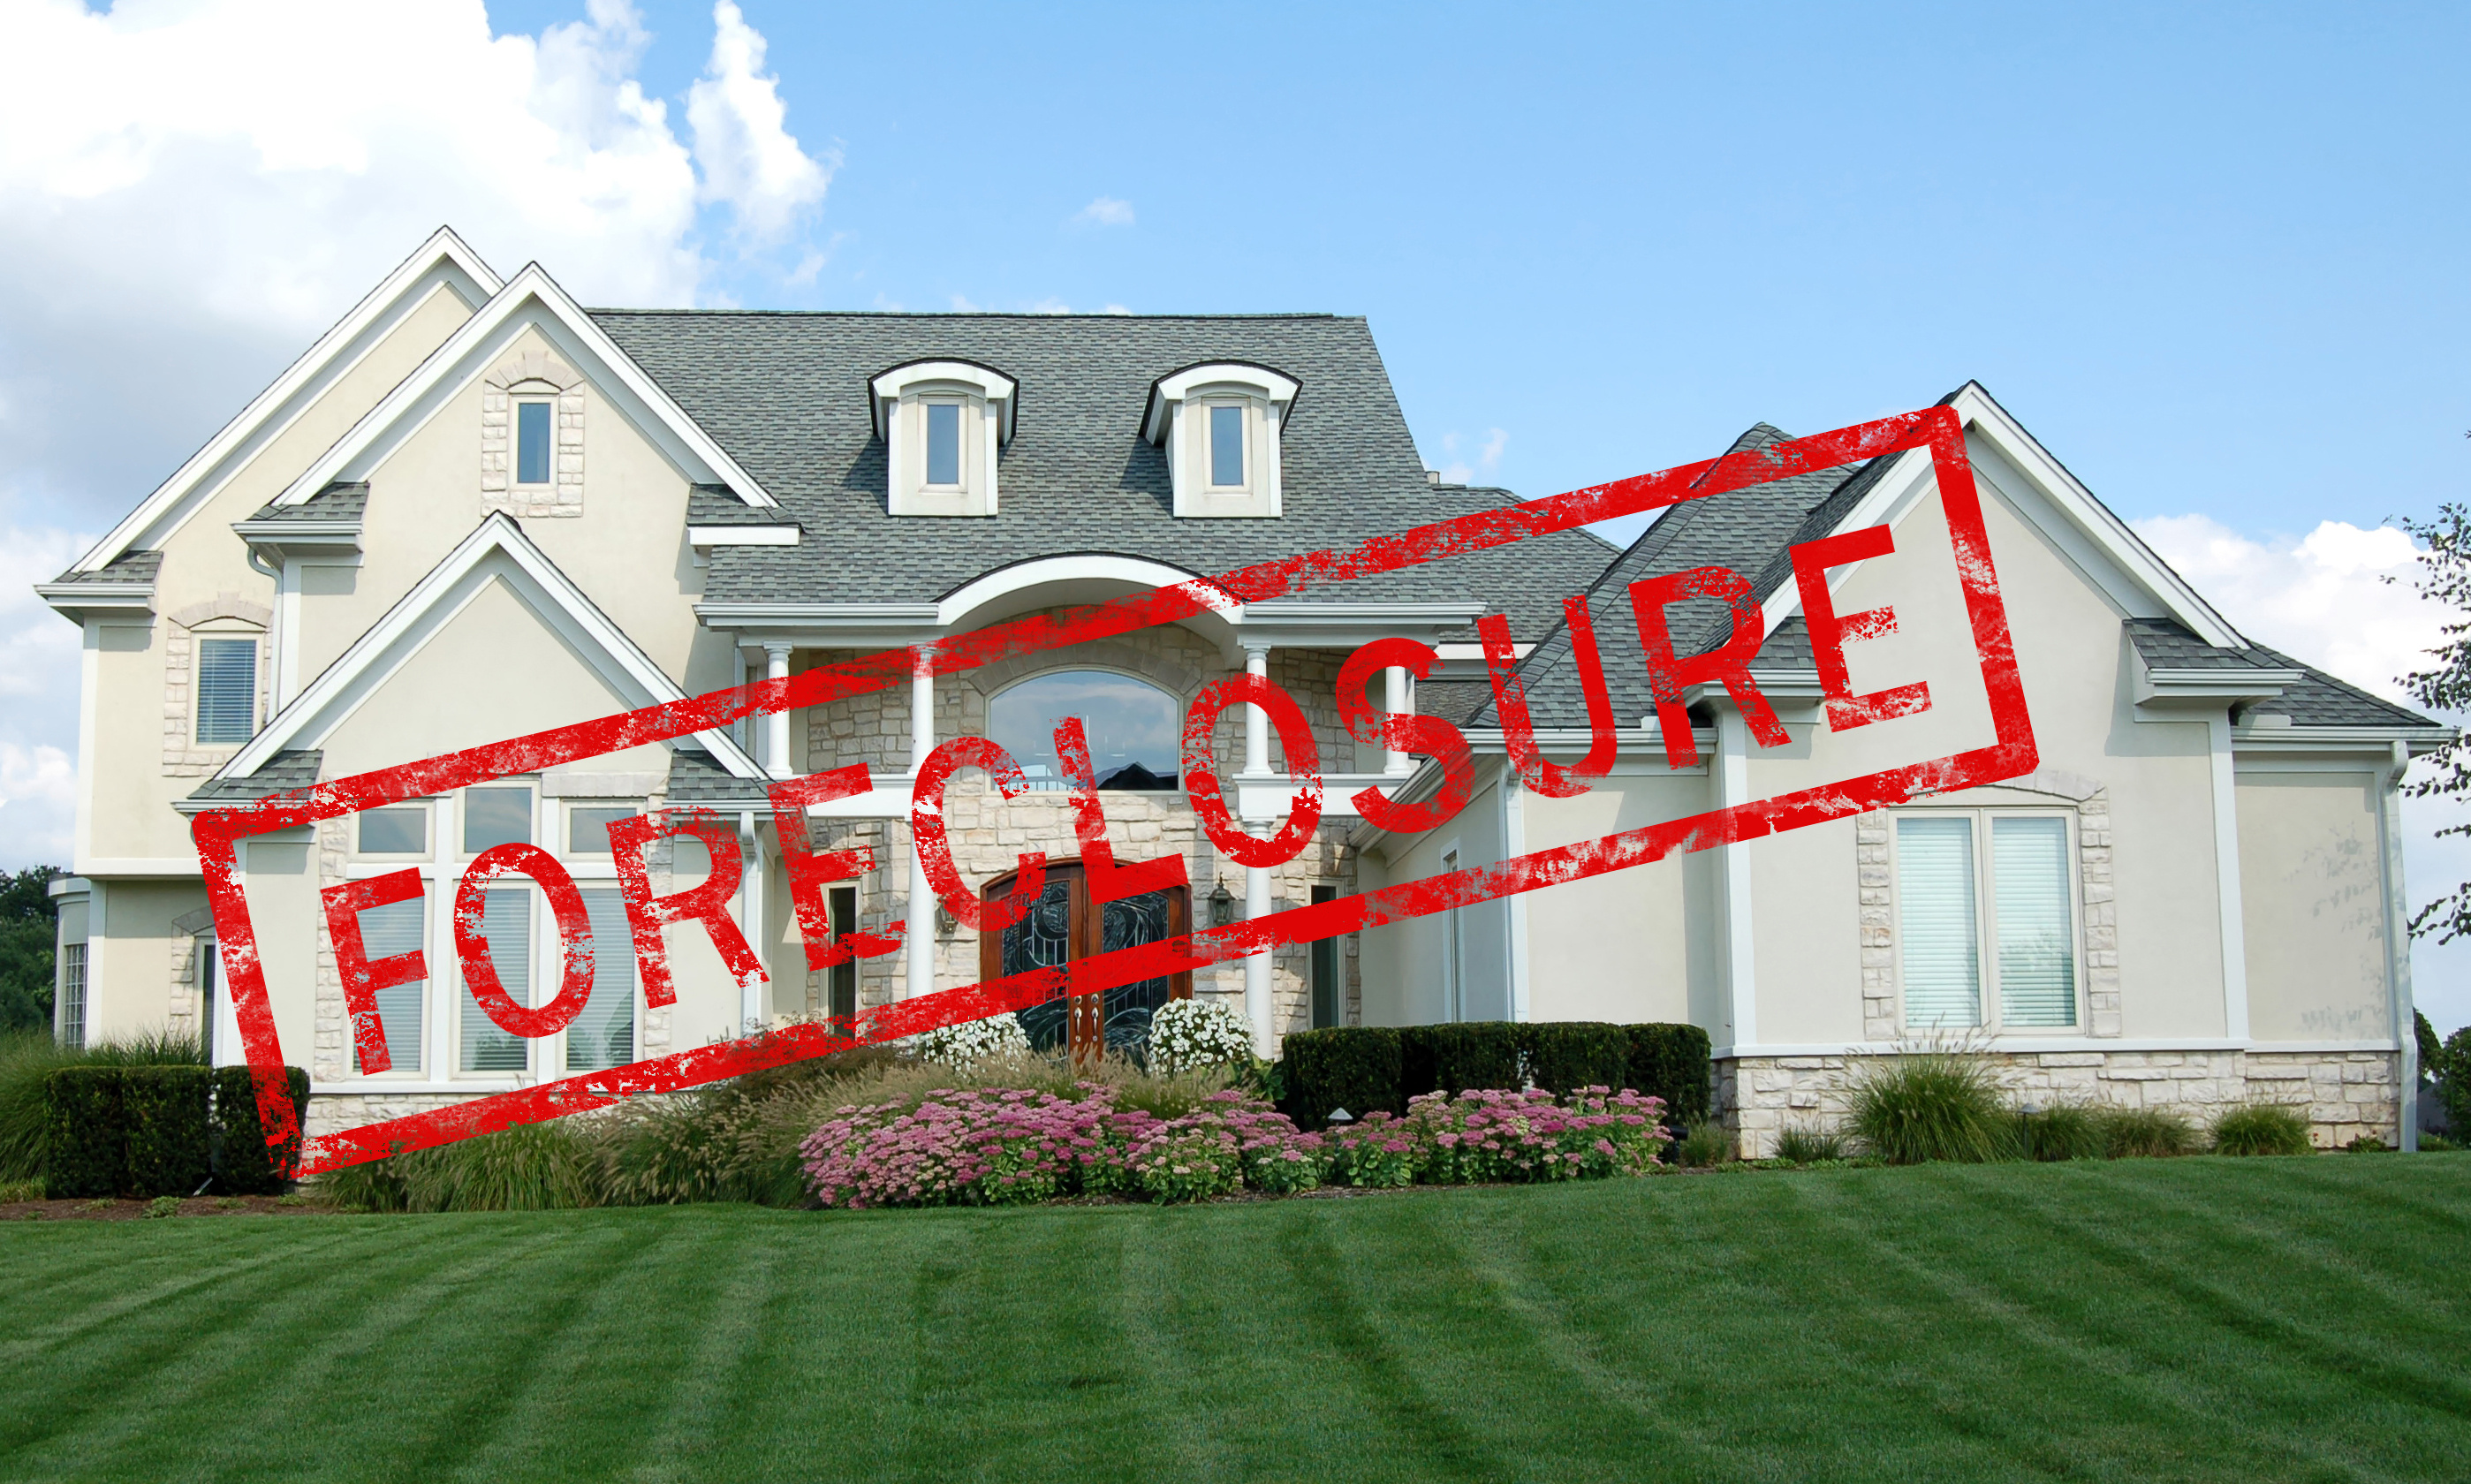 Call James Blanton Appraisals when you need valuations of Craven foreclosures